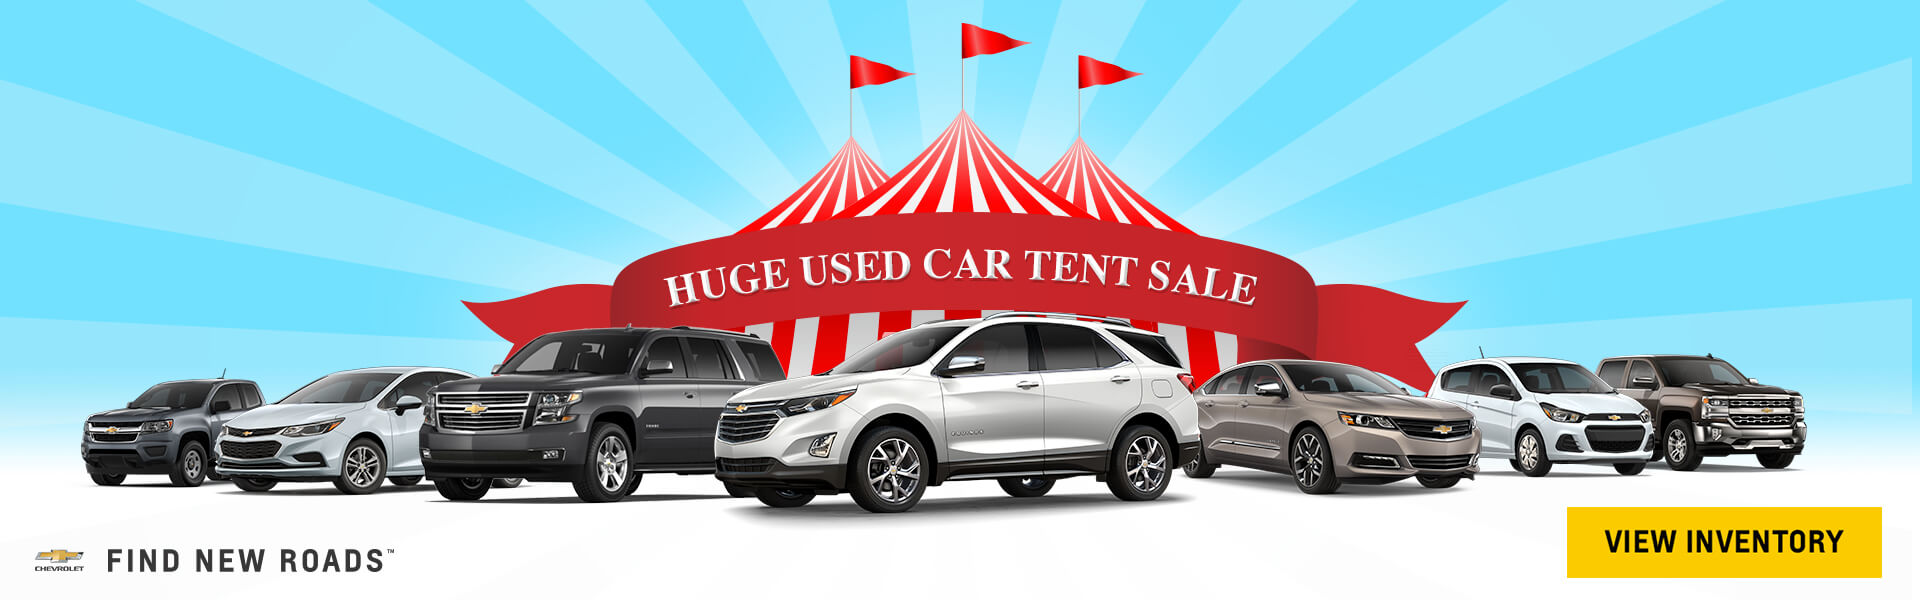 Huge Used Car Tent Sale